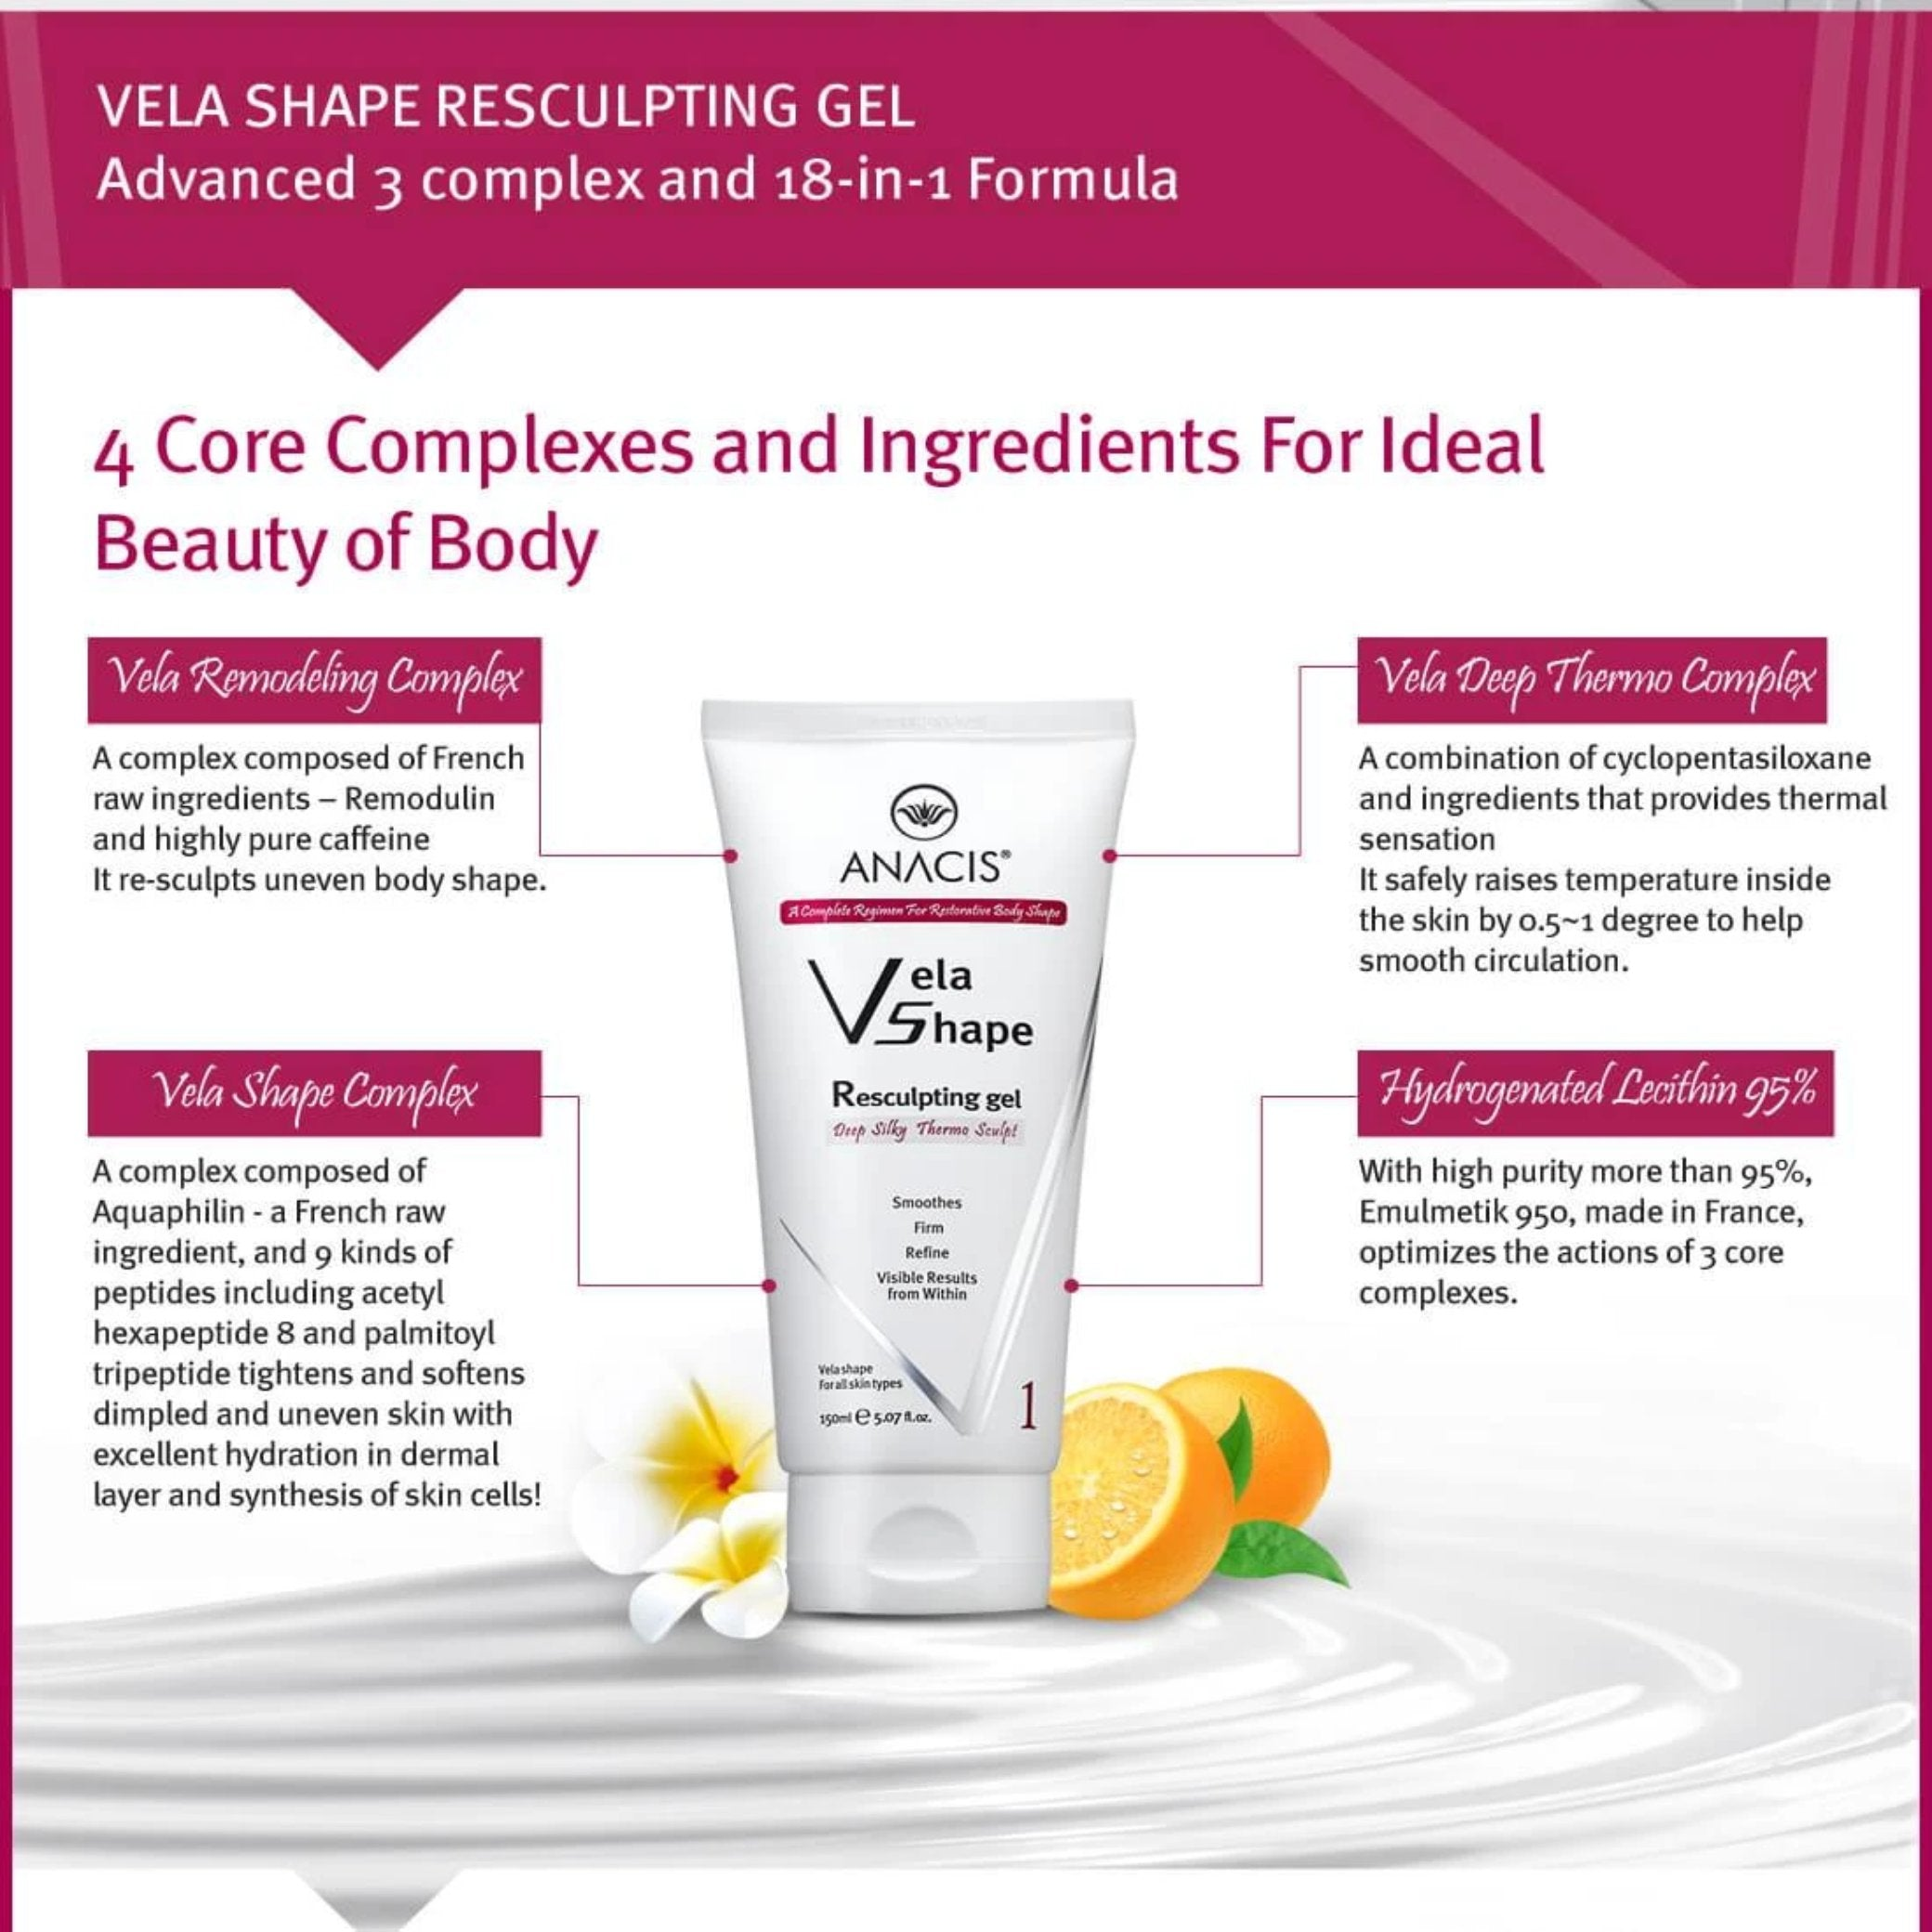 Creates firmness while minimizing bumpy skin Promotes smoother, firmer, tighter body- Medactiveshop